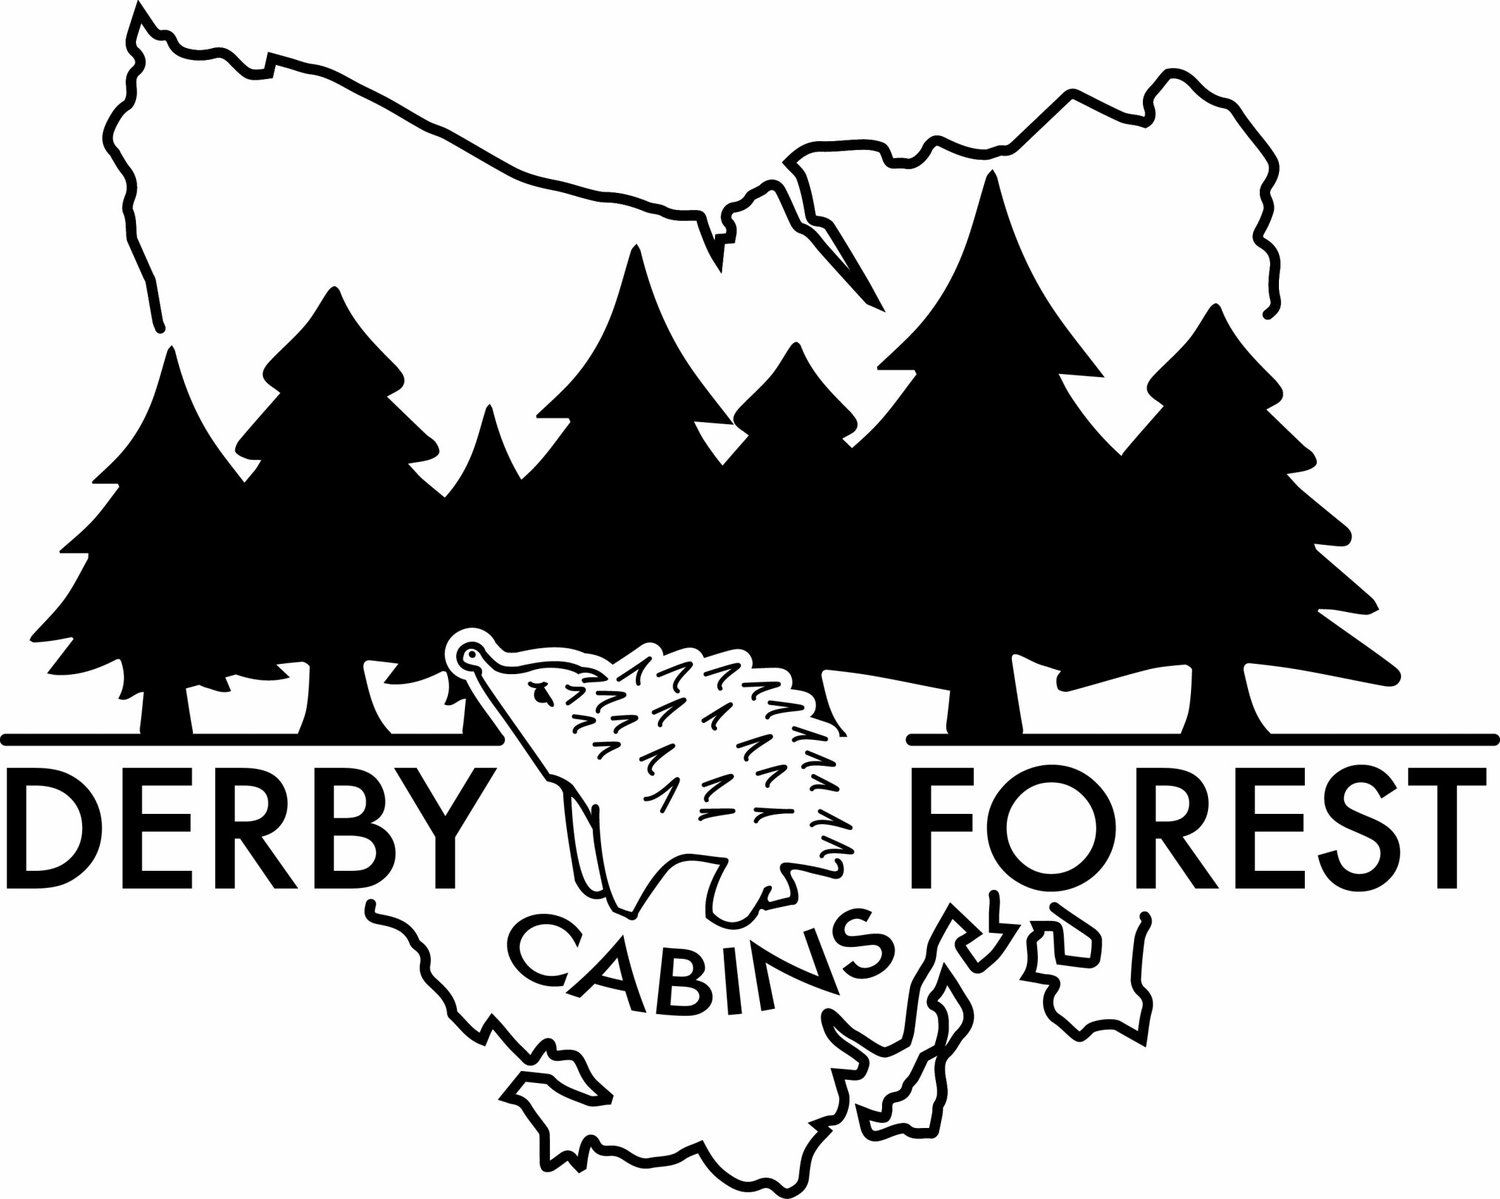 Derby Forest Cabins